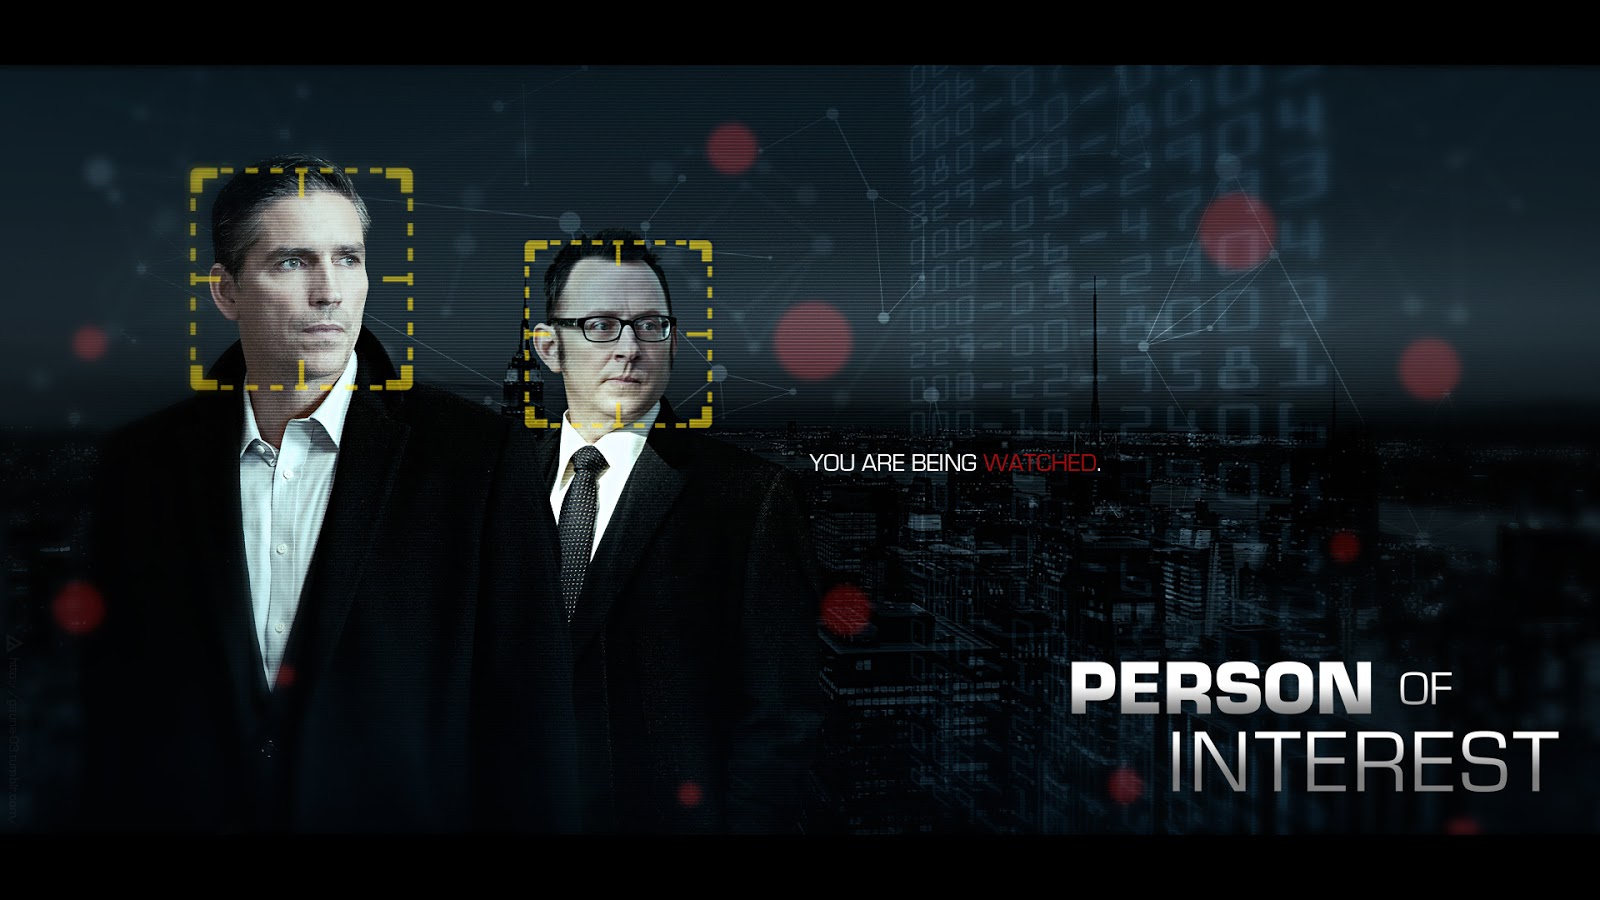 Person-of-Interest-person-of-interest-30